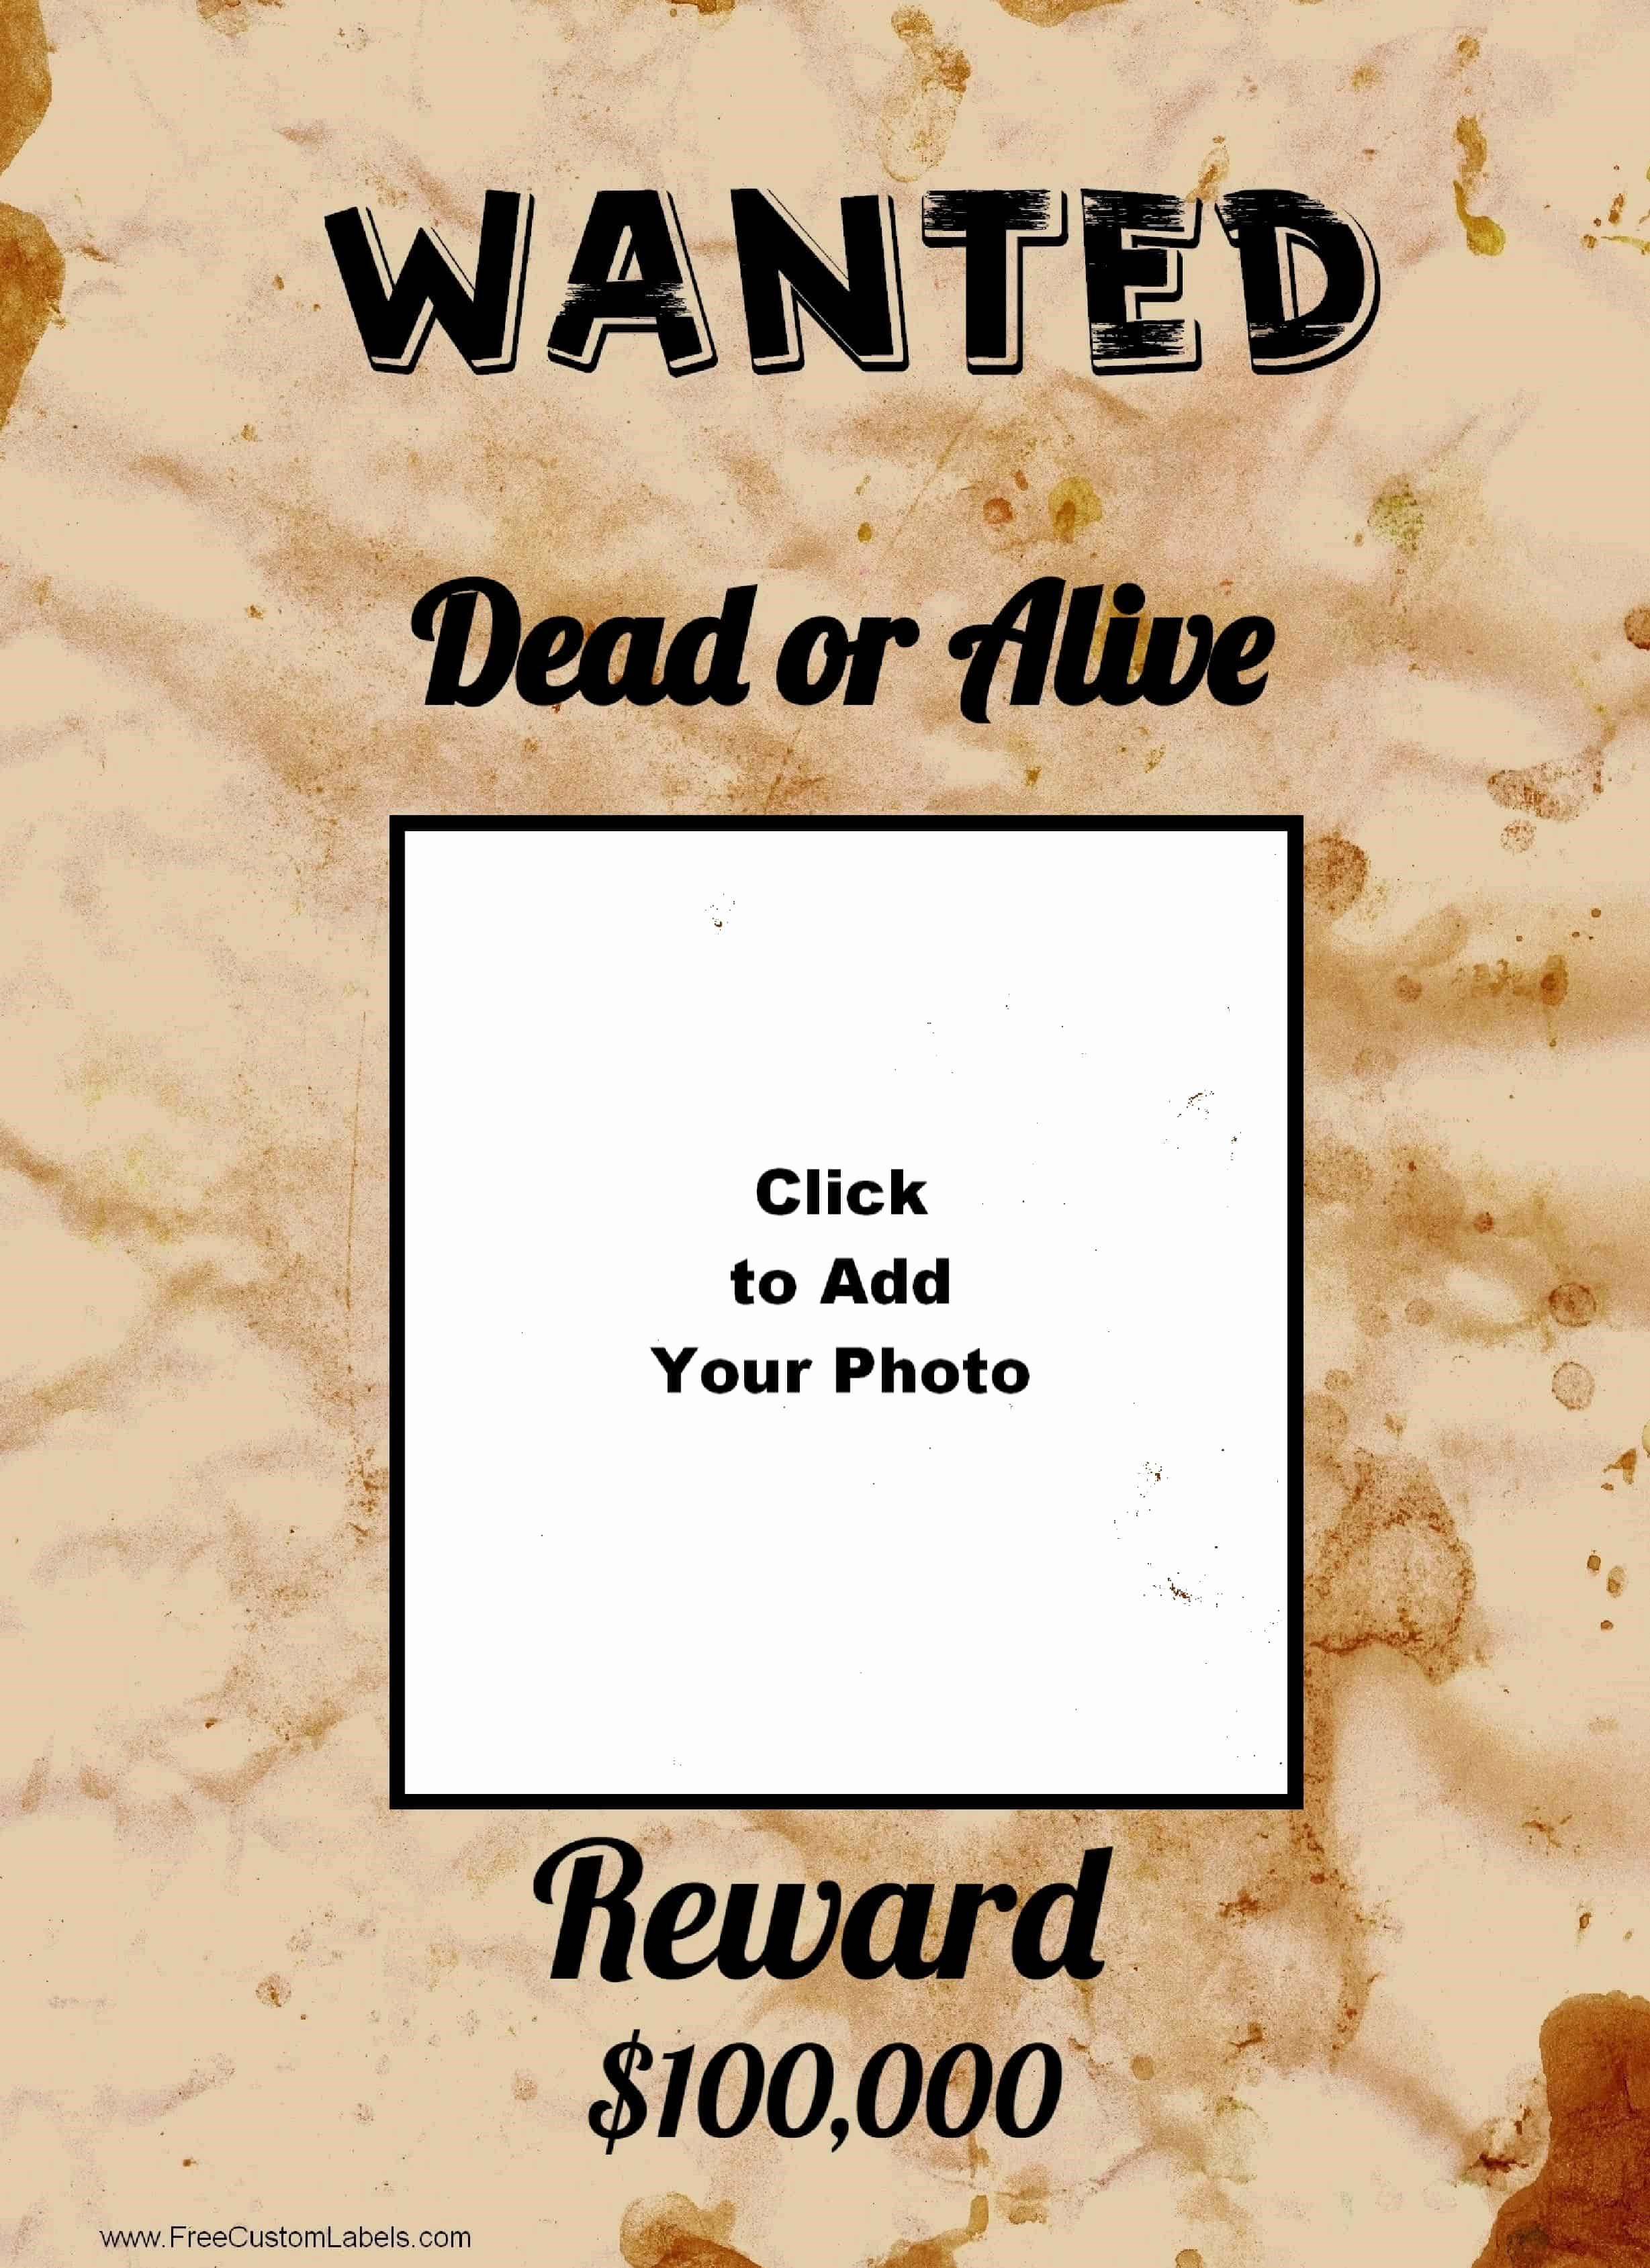 Free Wanted Poster Template Printable New Free Wanted Poster Maker